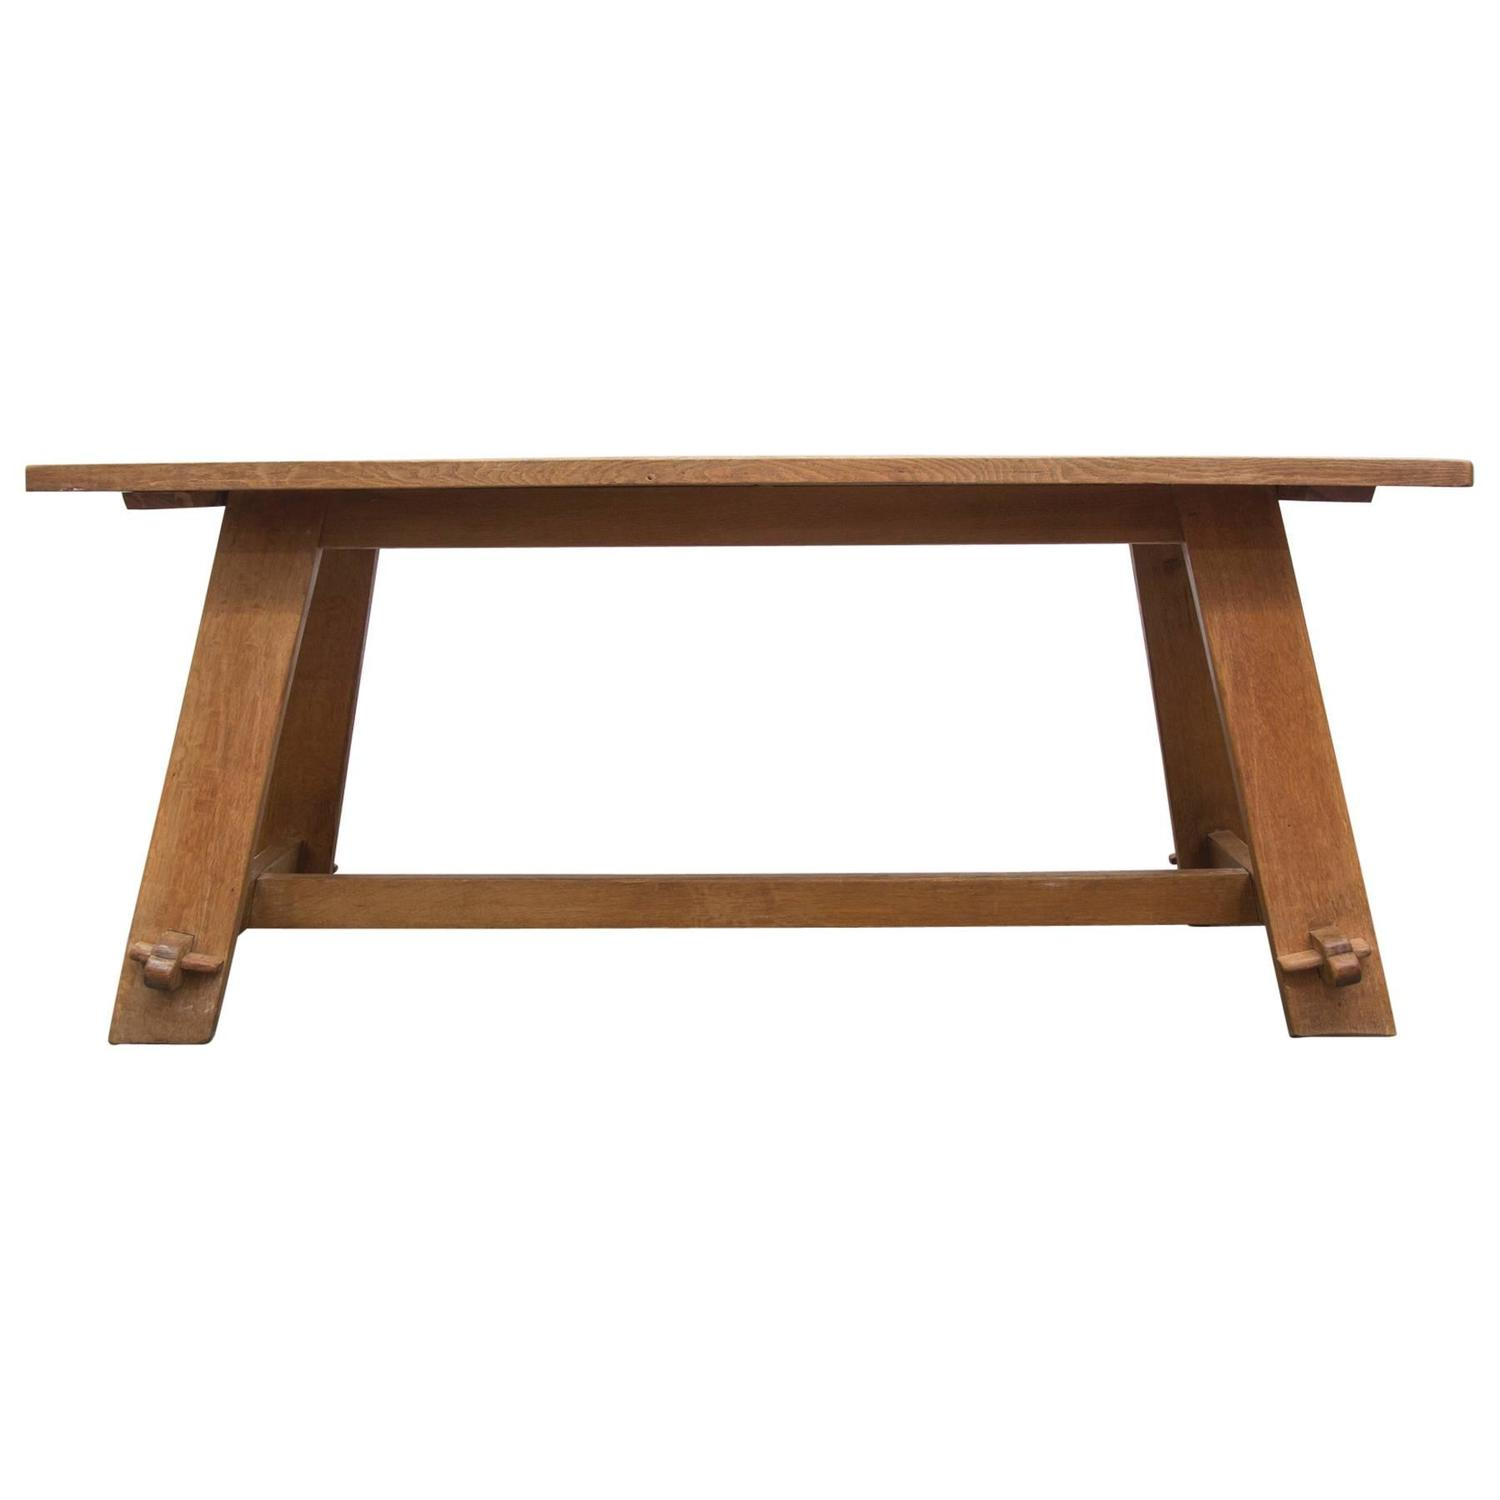 Solid oak trestle dining table at 1stdibs for Solid oak dining table